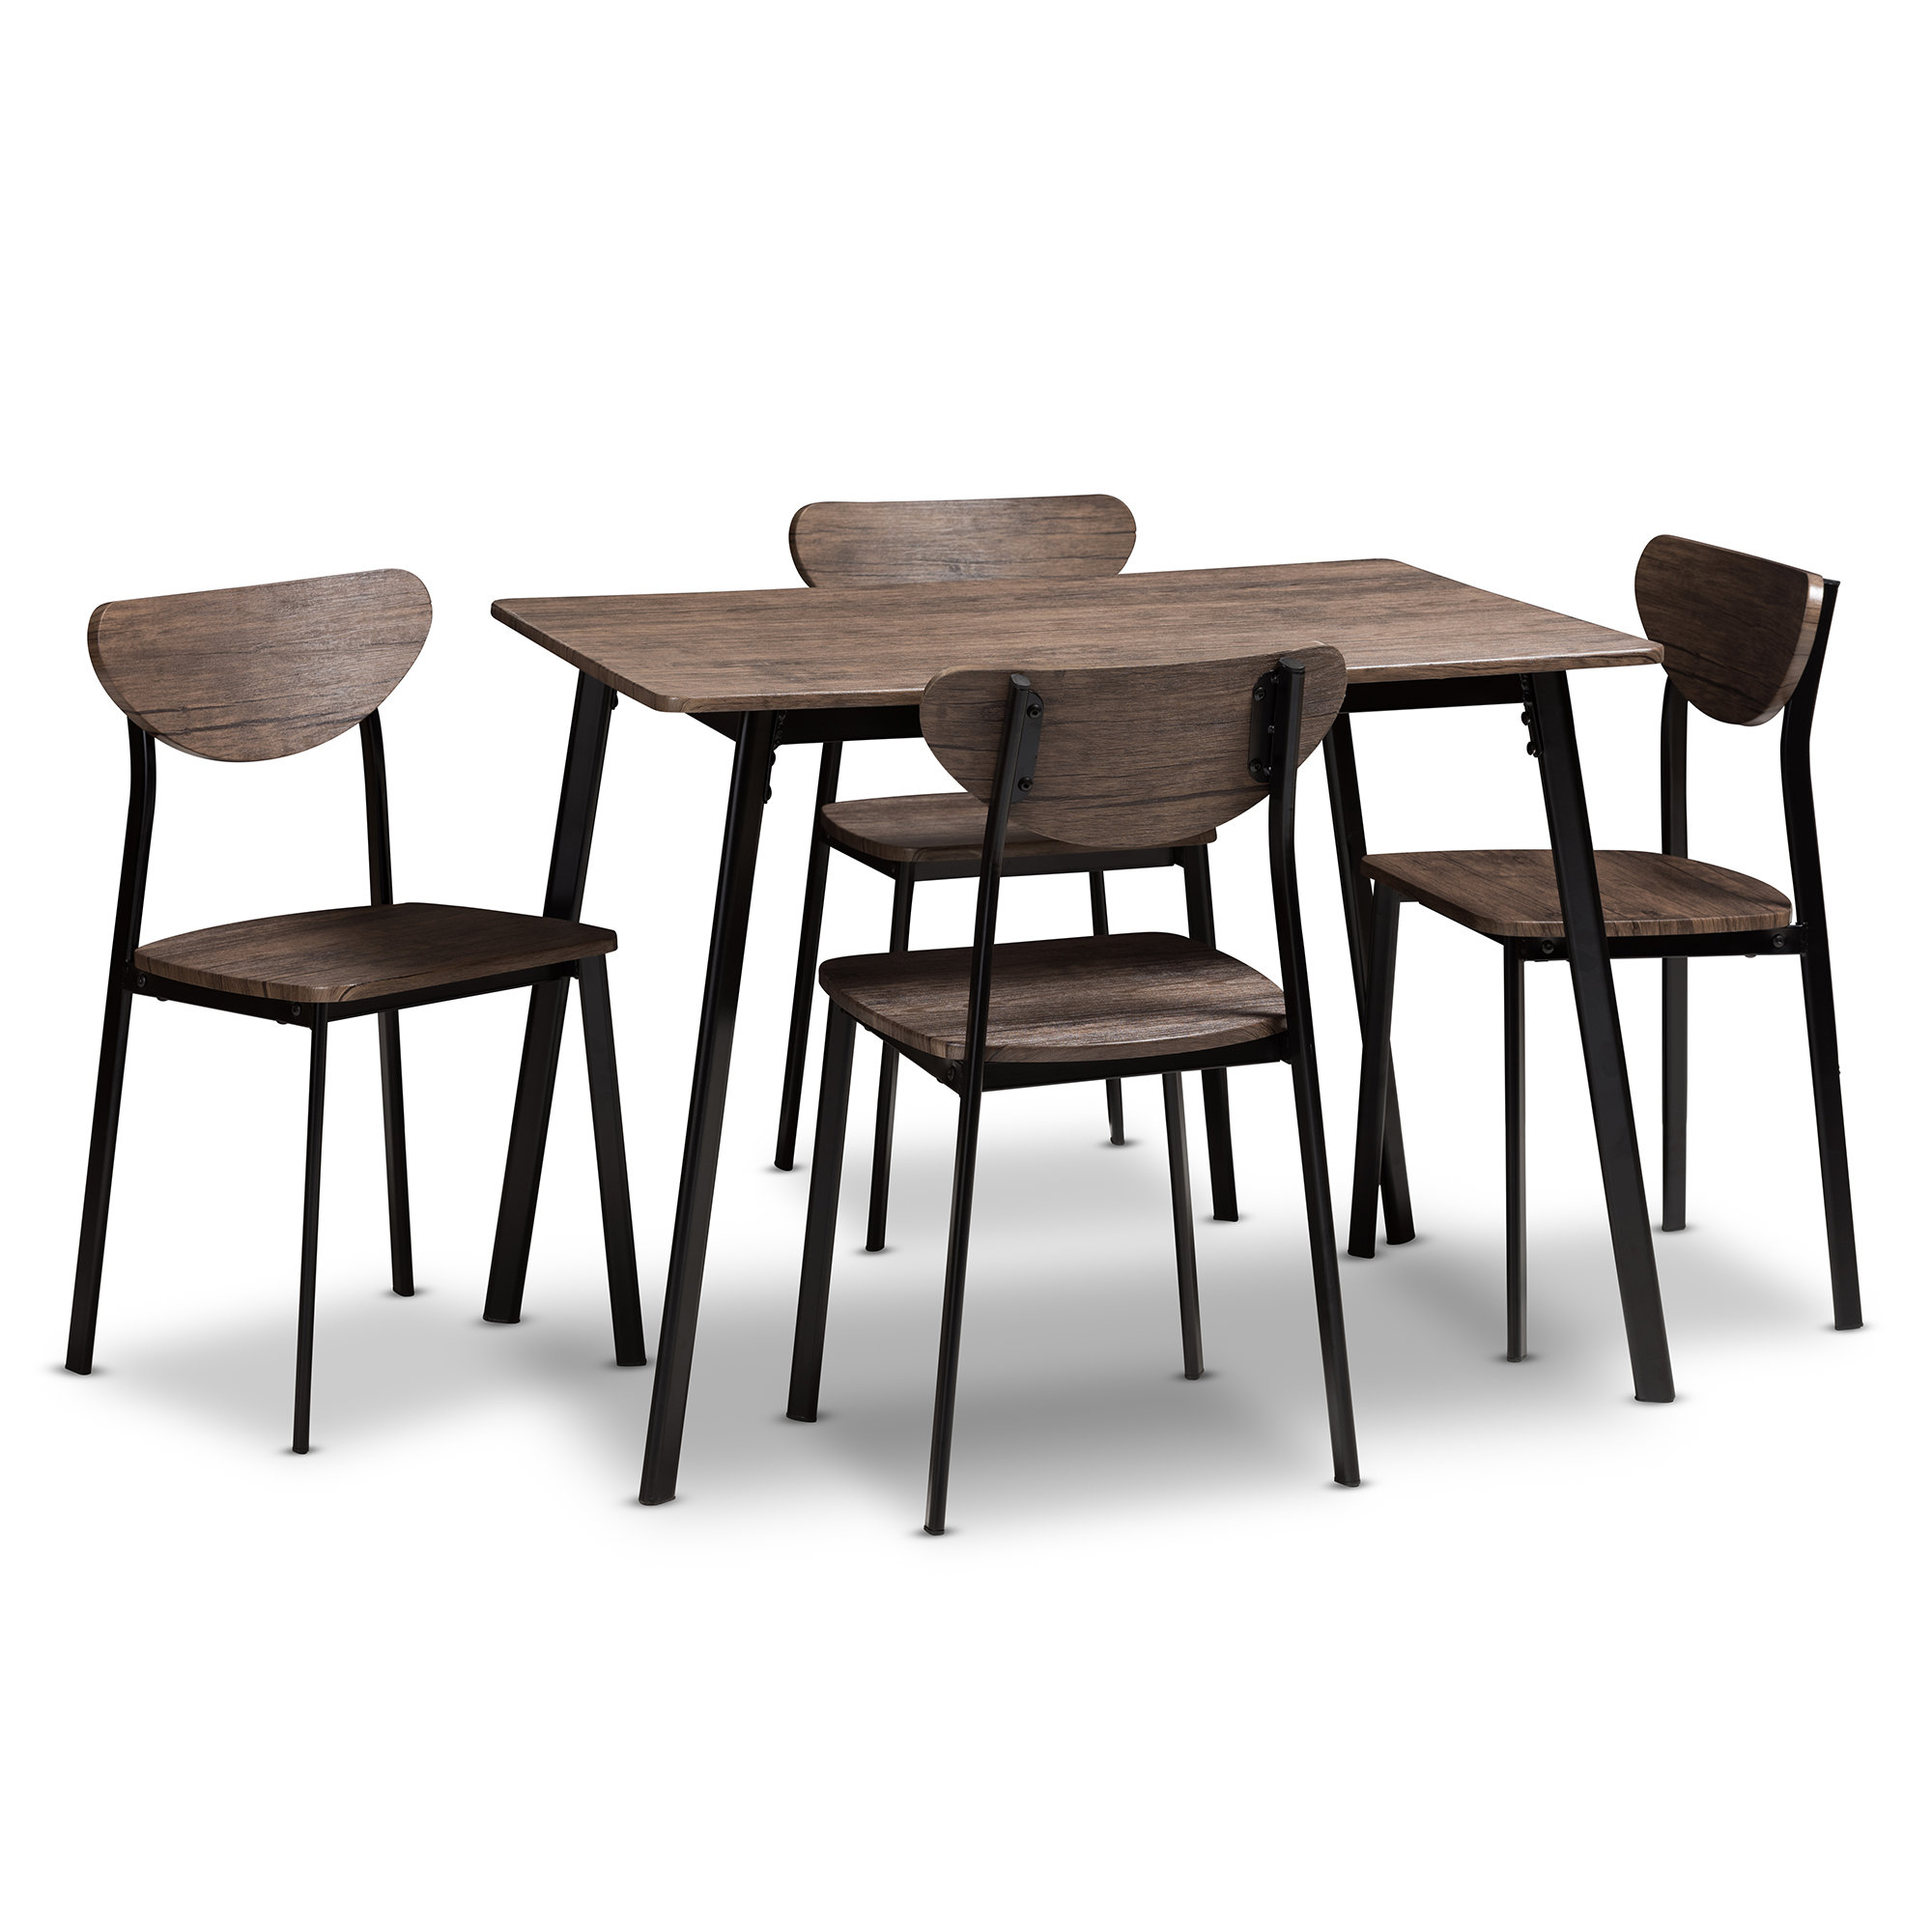 Tejeda 5 Piece Dining Set Throughout Most Popular Middleport 5 Piece Dining Sets (View 18 of 20)